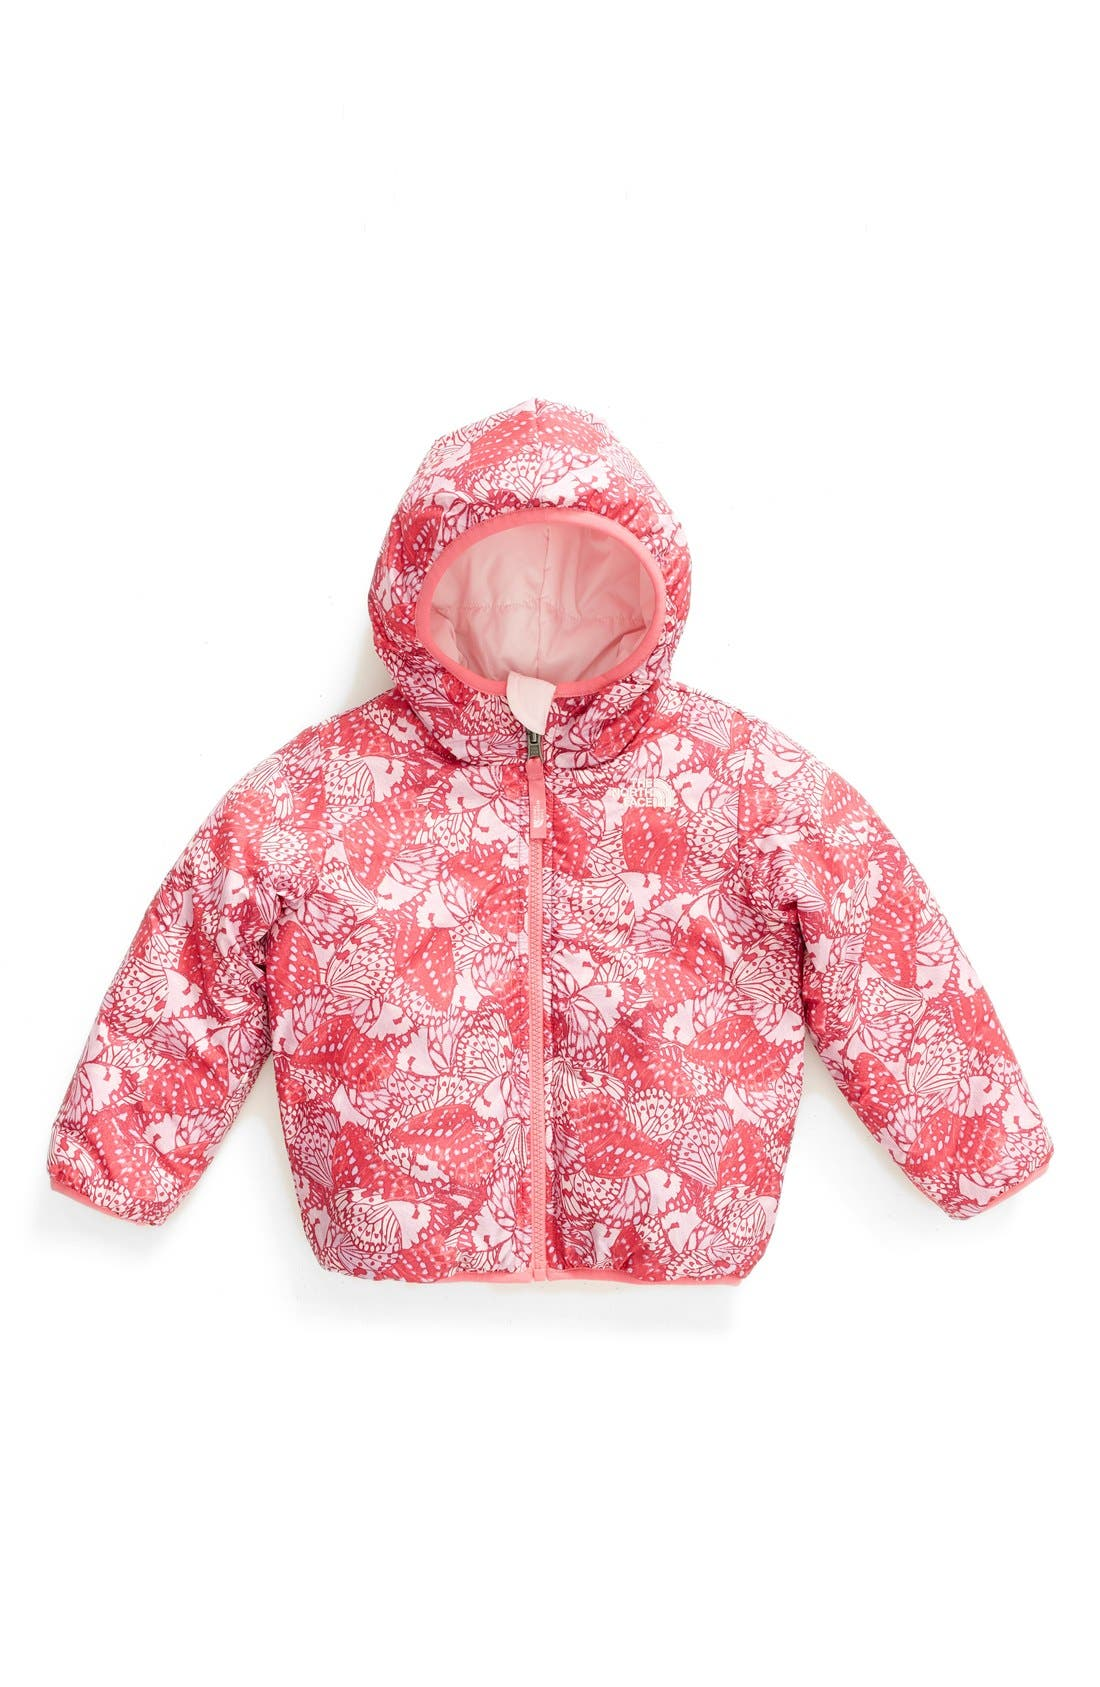 Alternate Image 1 Selected - The North Face 'Perrito' Reversible Water Repellent Hooded Jacket (Toddler Girls & Little Girls)